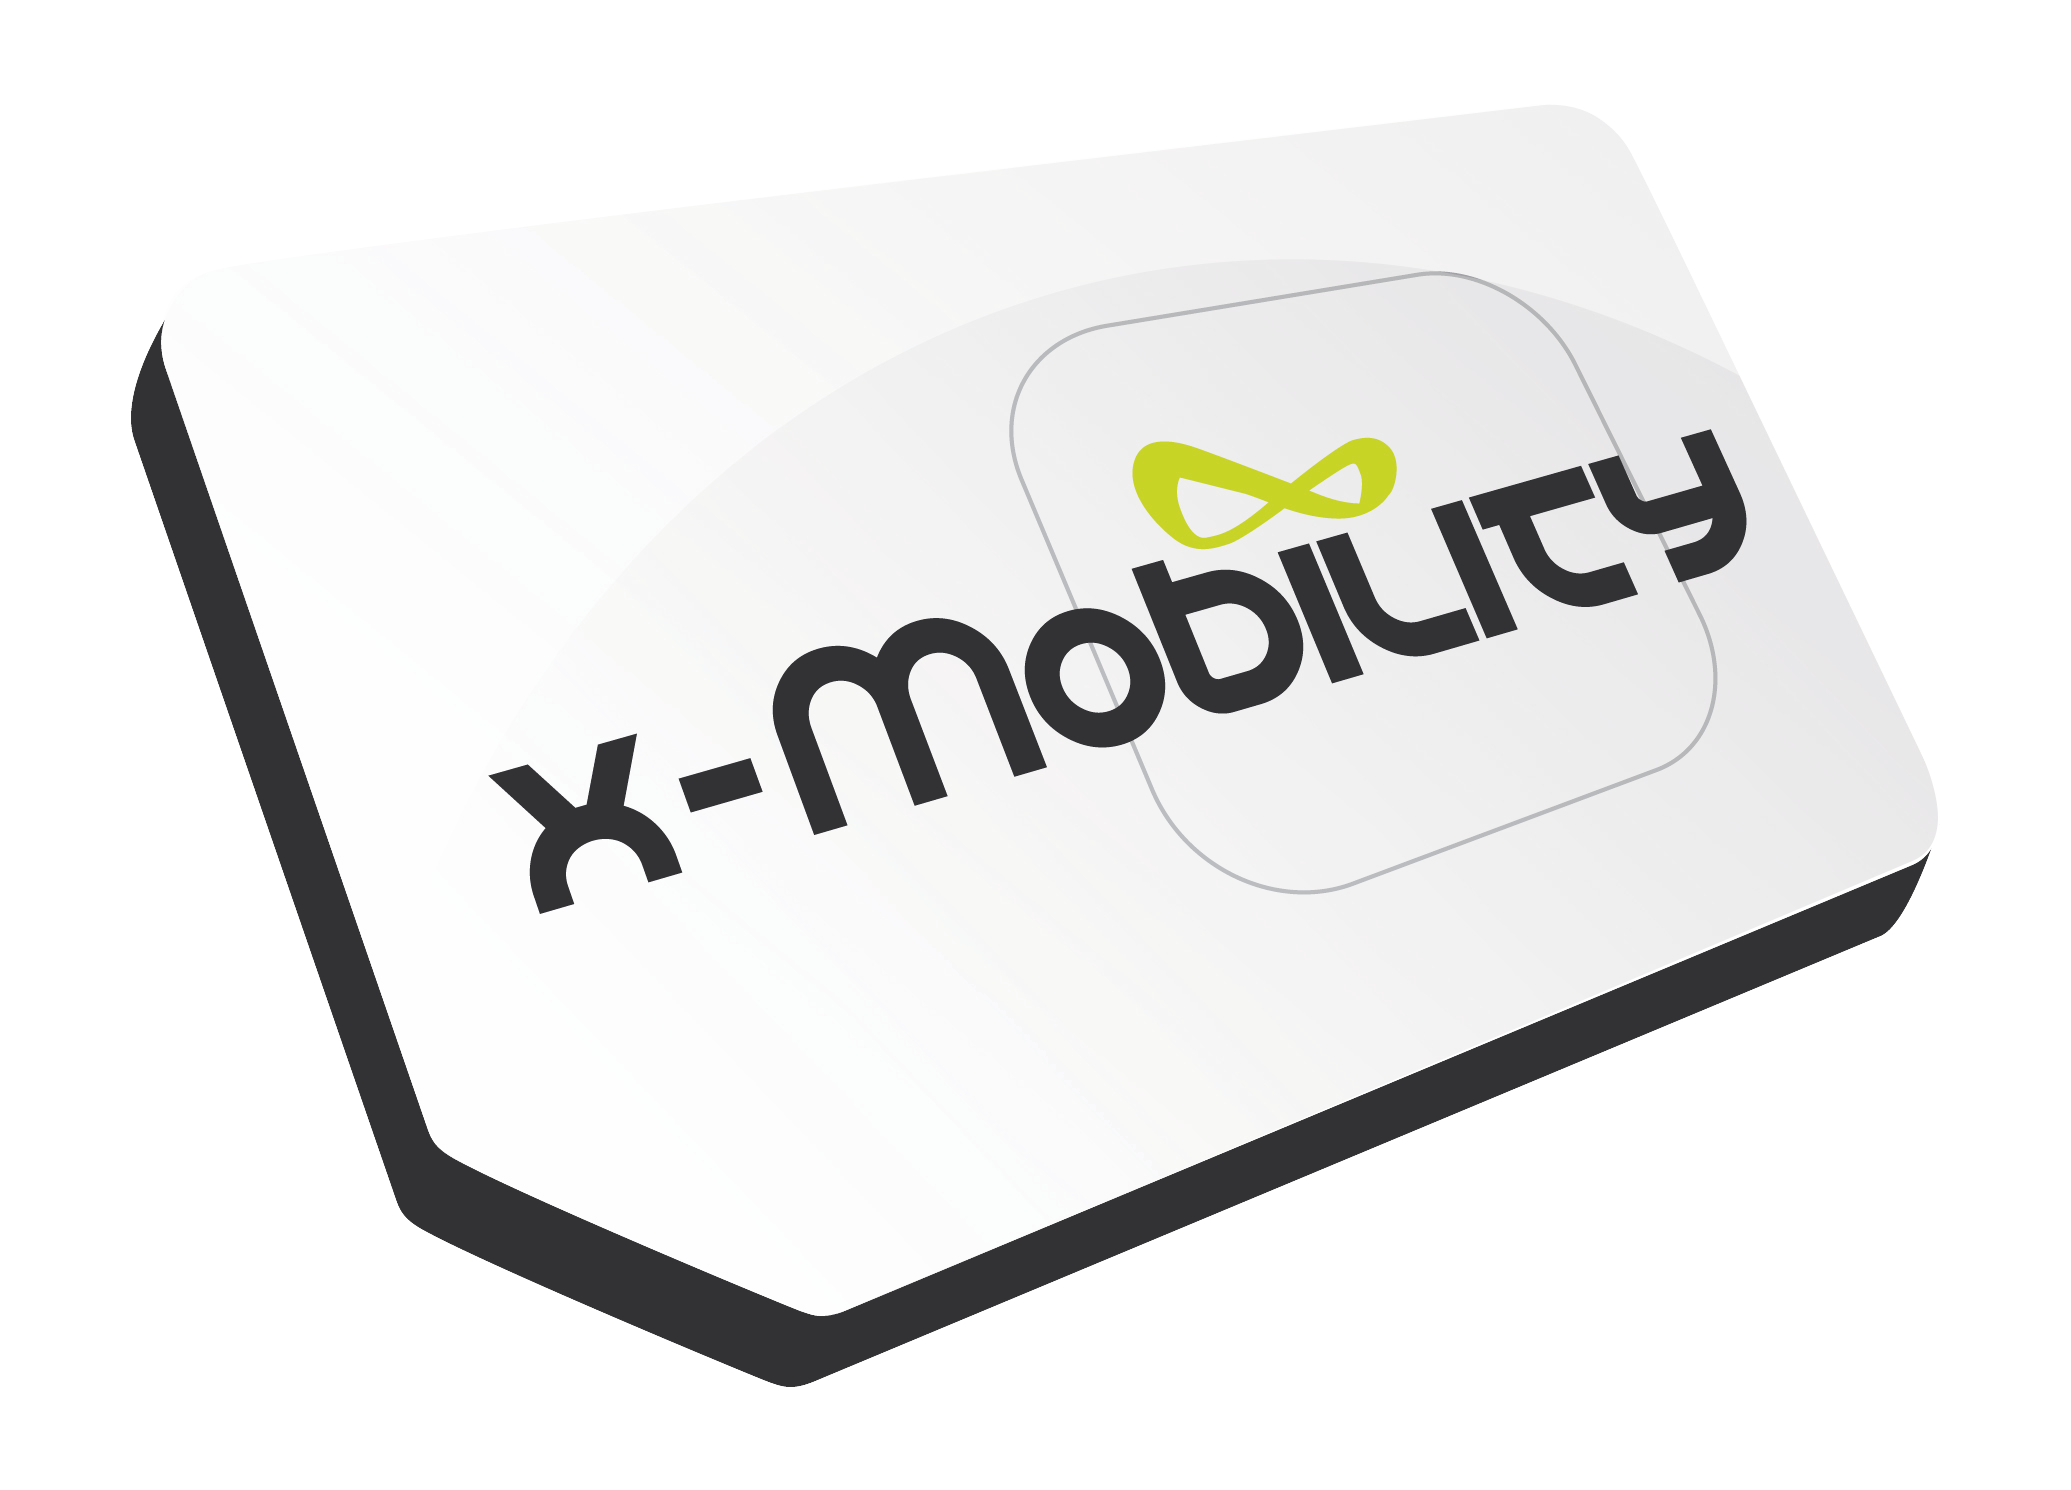 x-mobility logo of a sim card